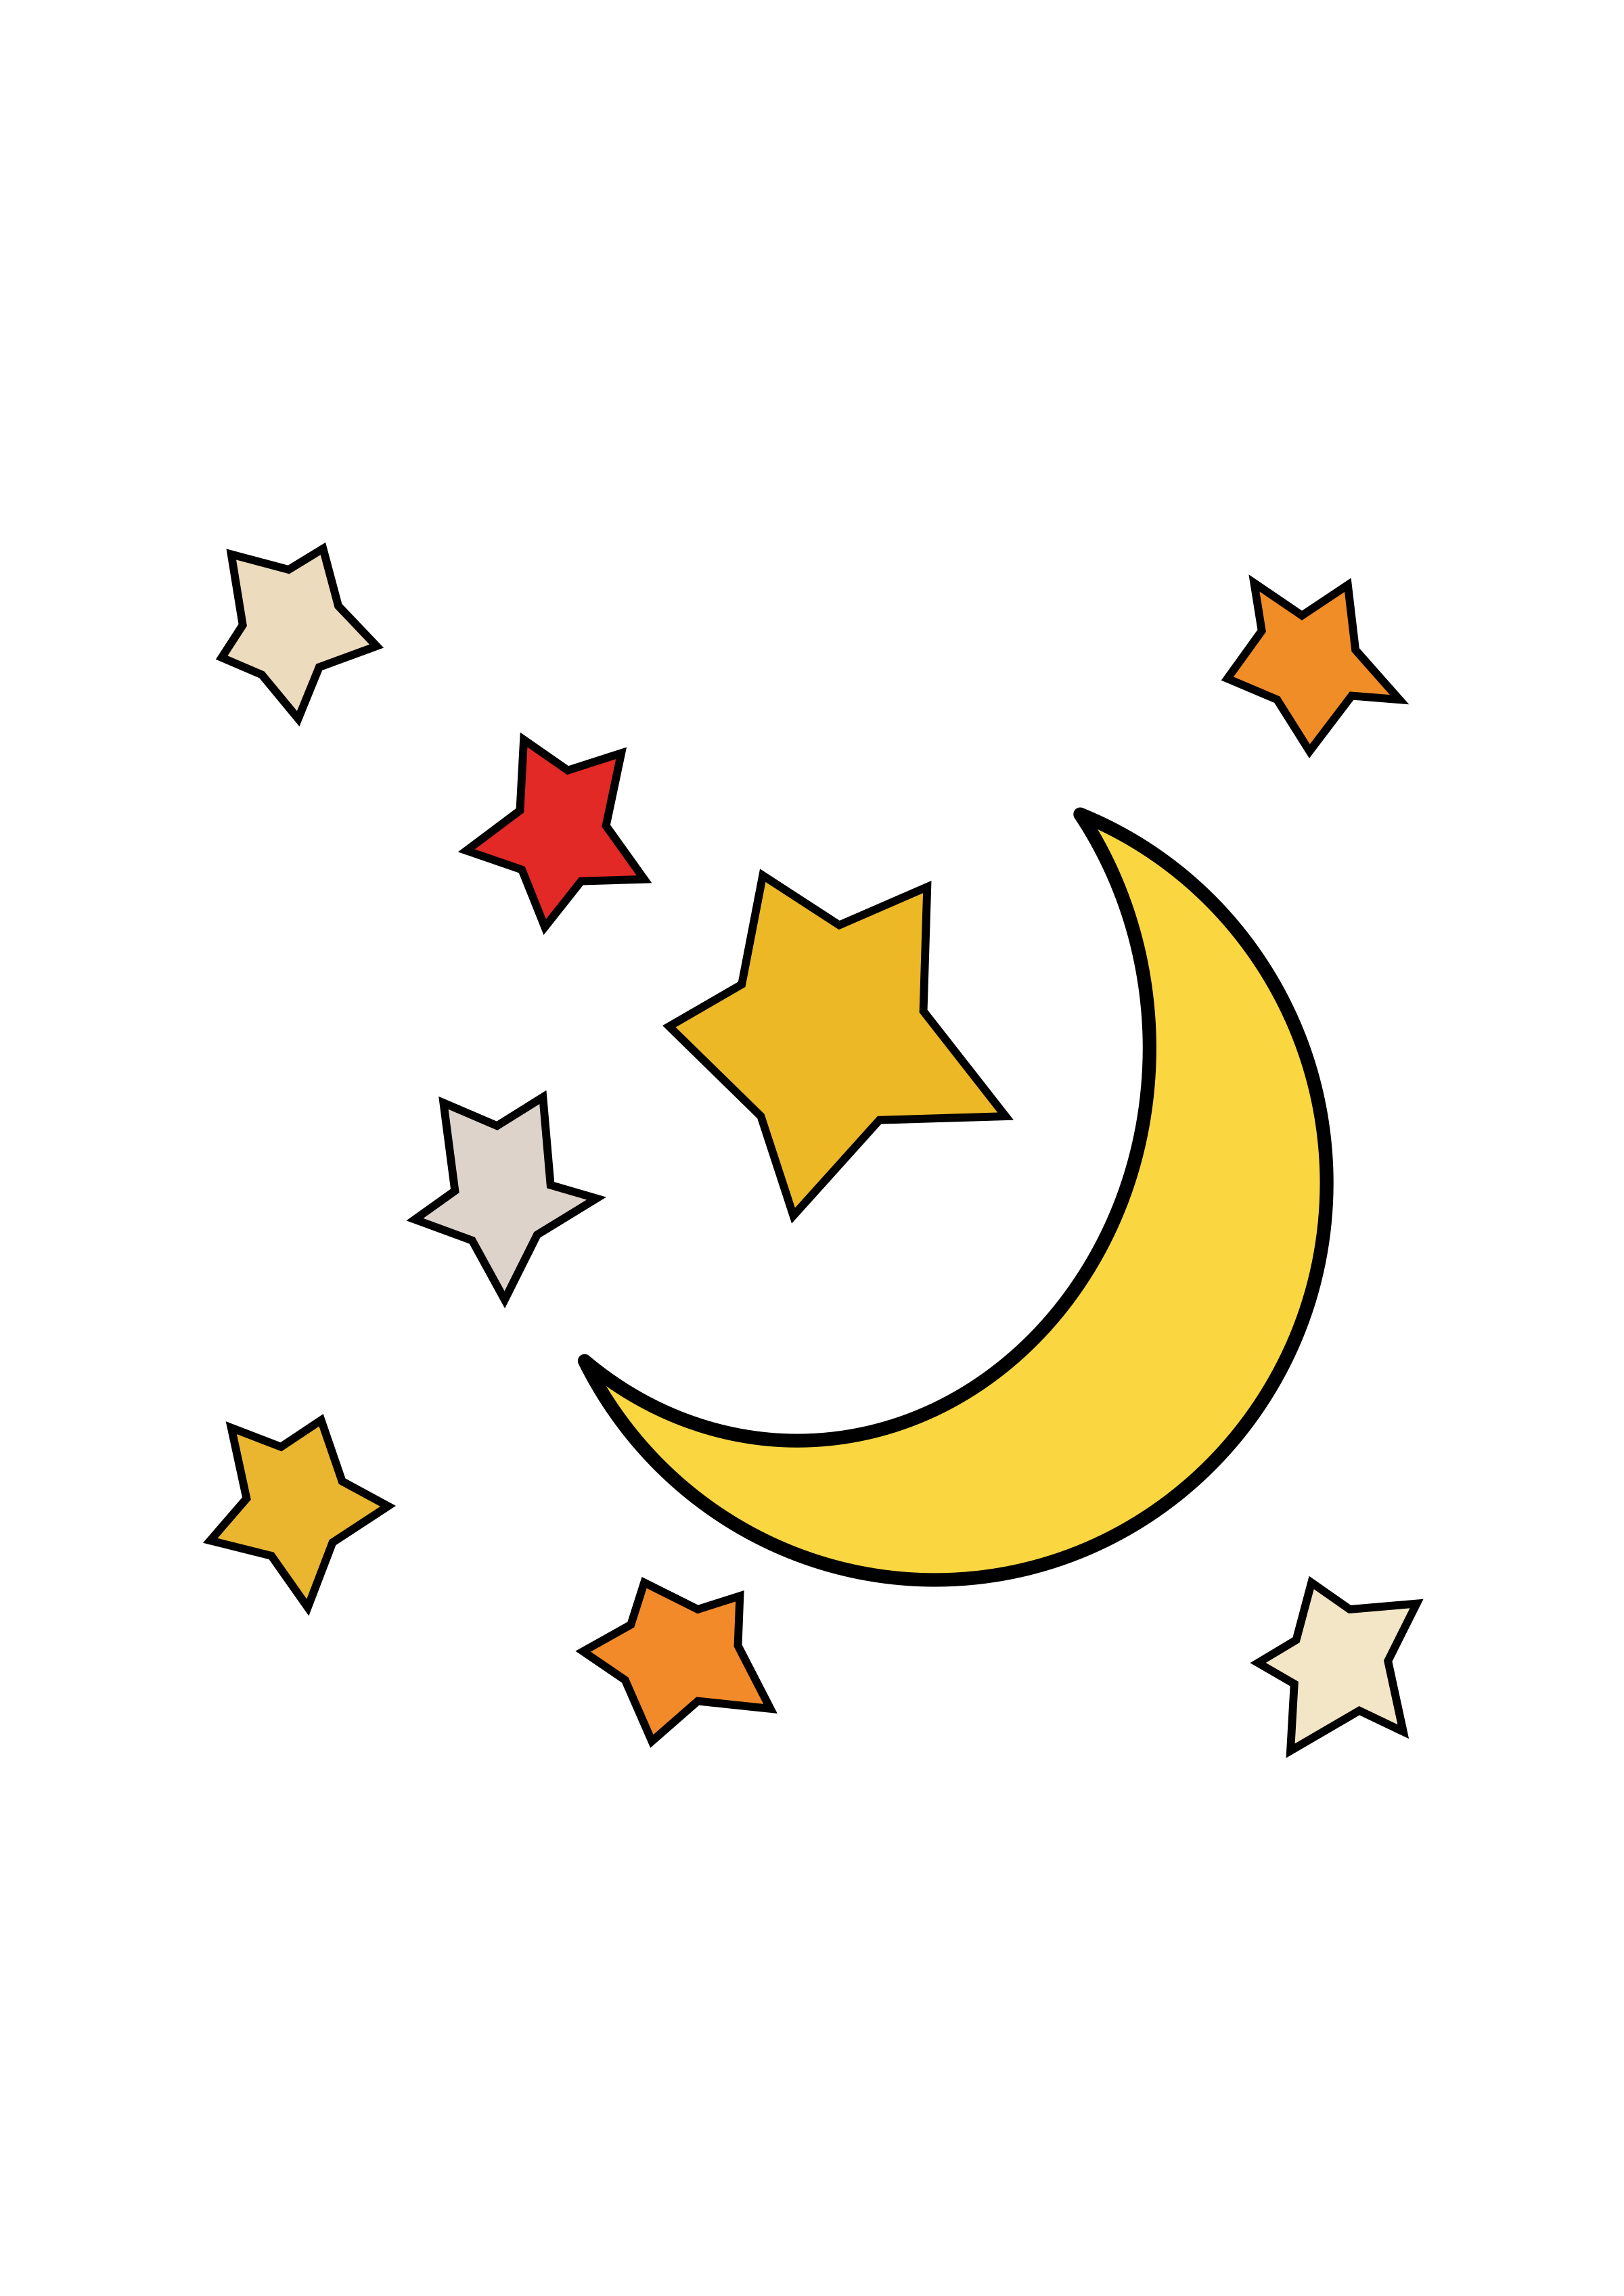 Moon and star clipart banner download Sun Moon Stars Clipart at GetDrawings.com | Free for personal use ... banner download